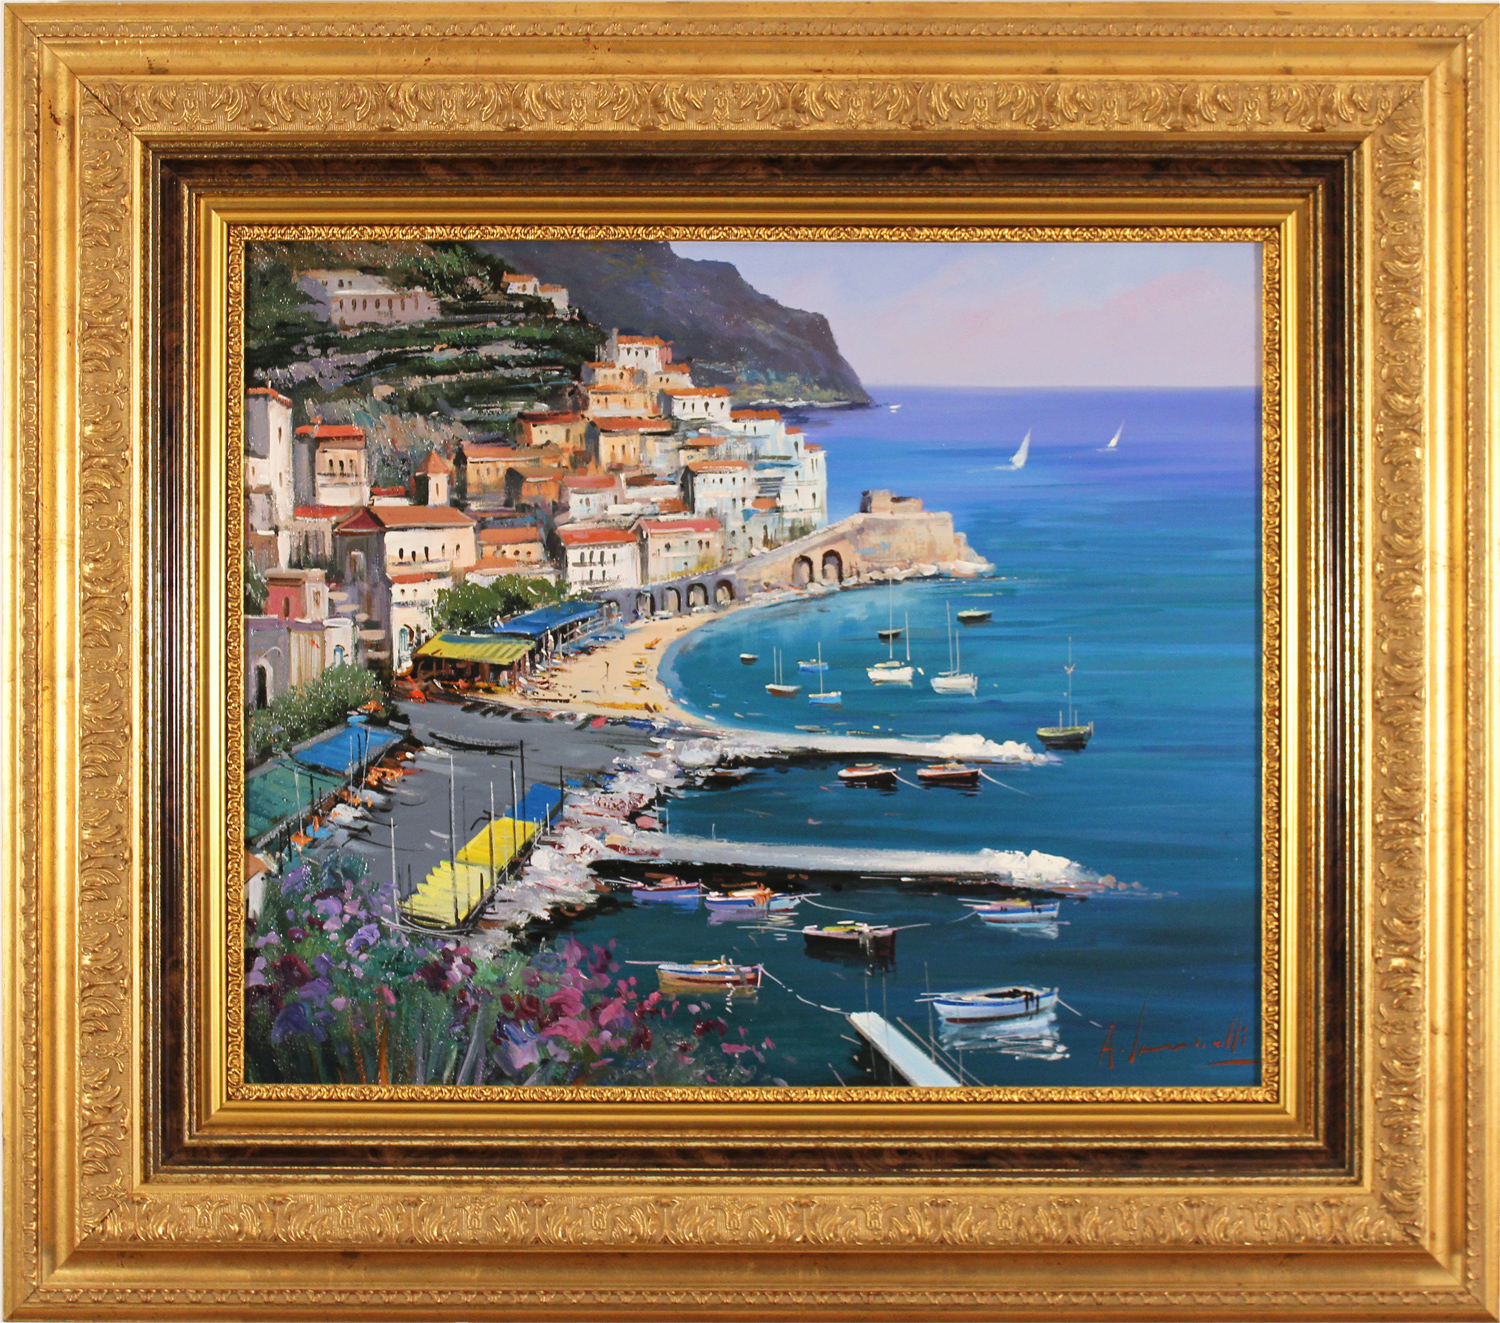 Antonio Ianicelli, Original oil painting on canvas, Amalfi, Italy. Click to enlarge